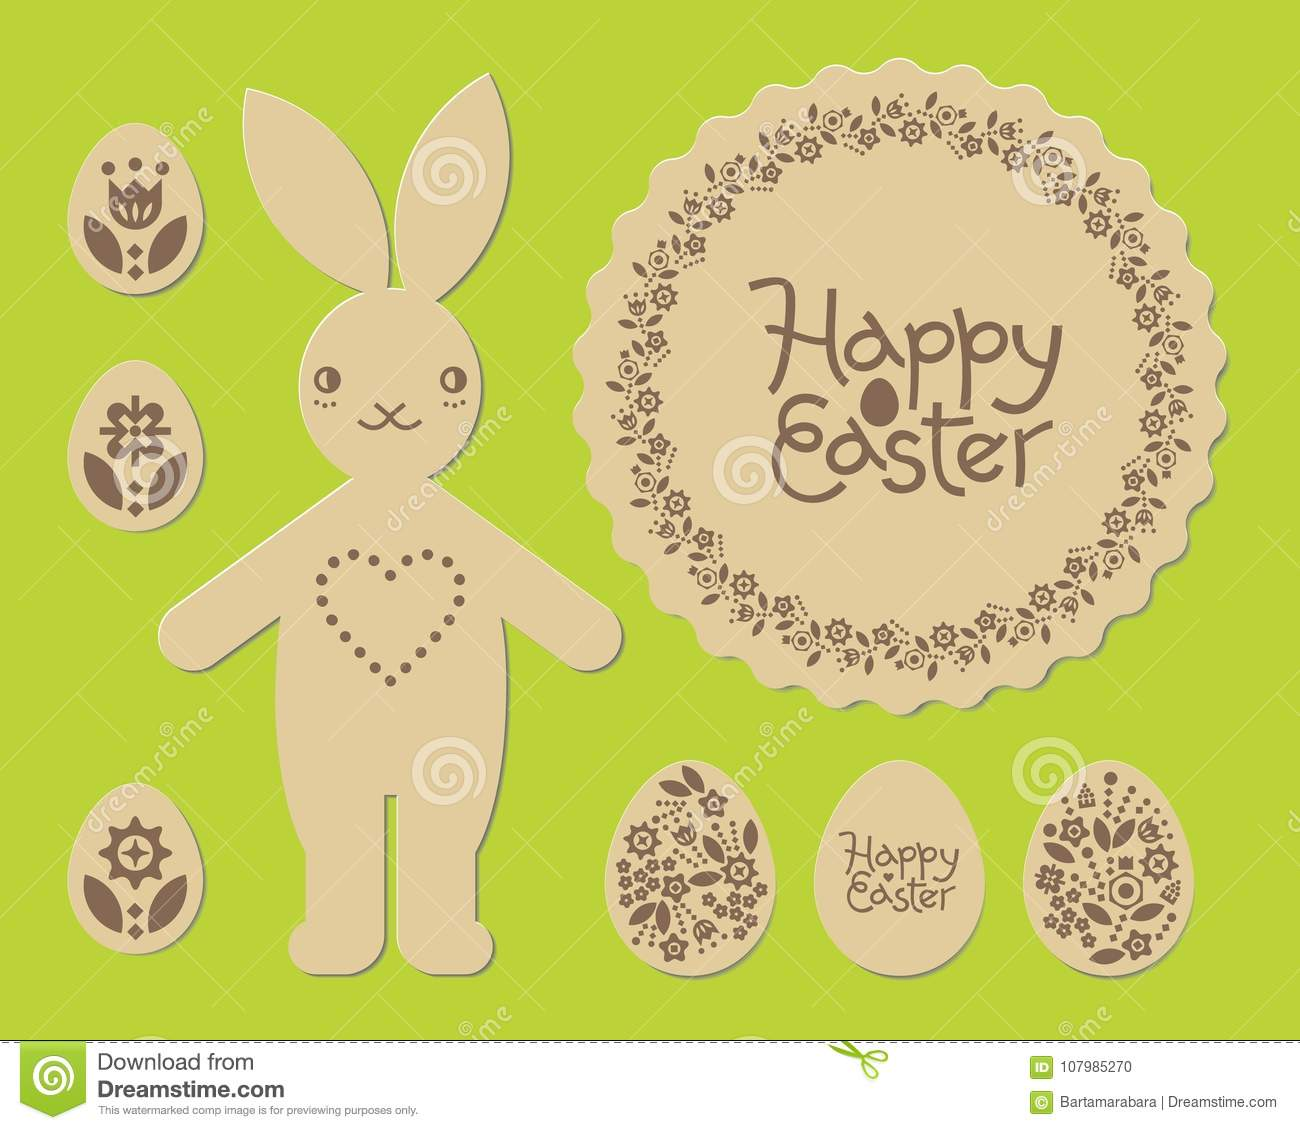 Easter Bunny Rabbit Happy Laser Cut Pattern Cutting Template For Plywood